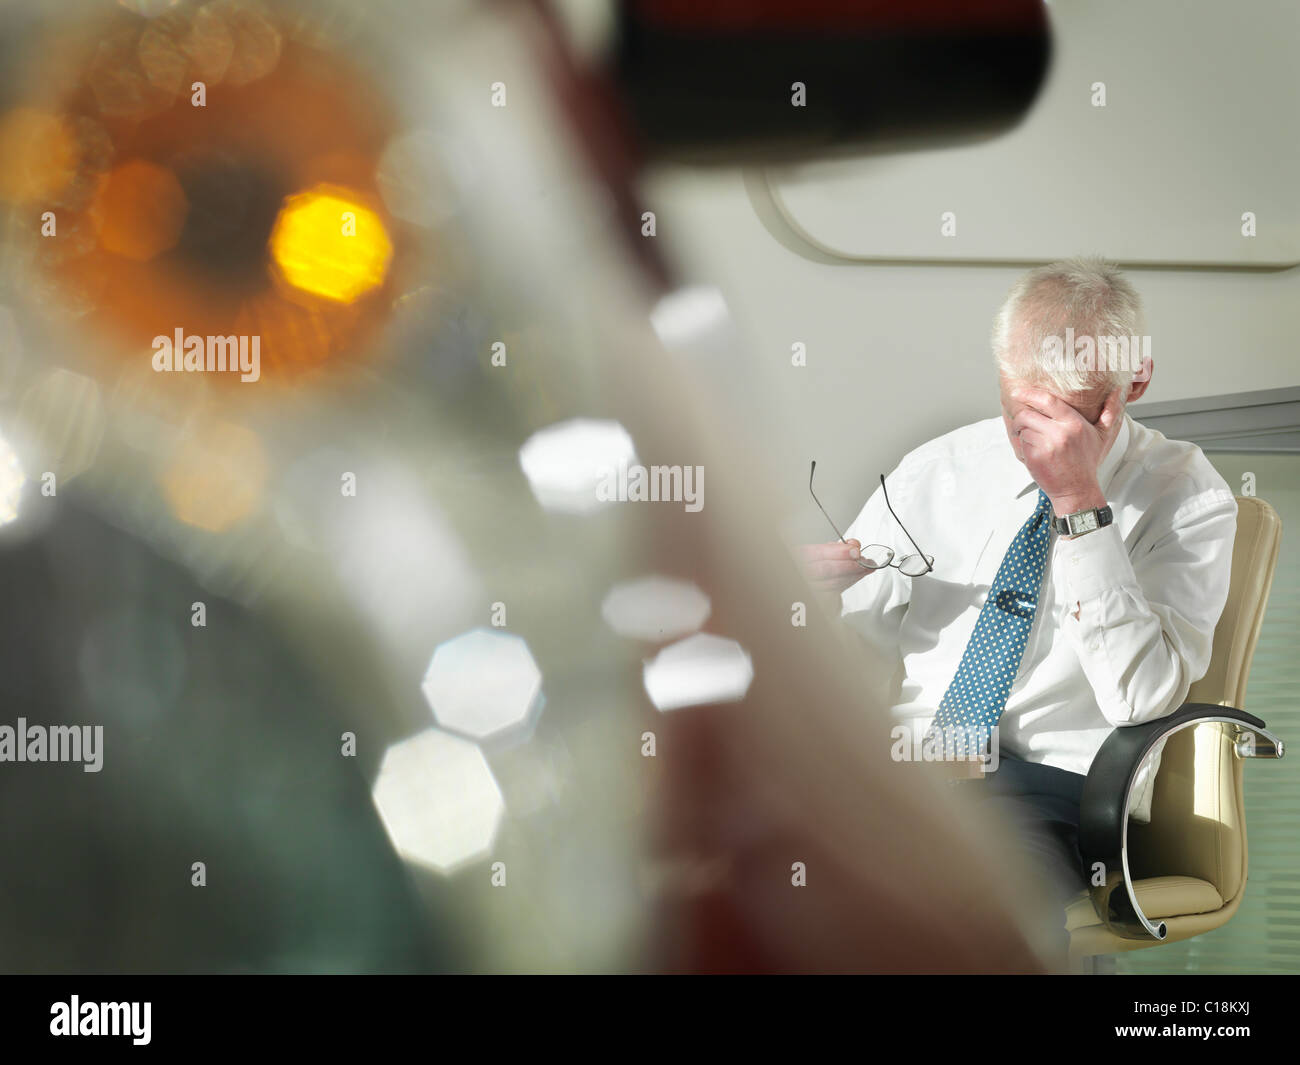 Salesman stressed or tired with car - Stock Image